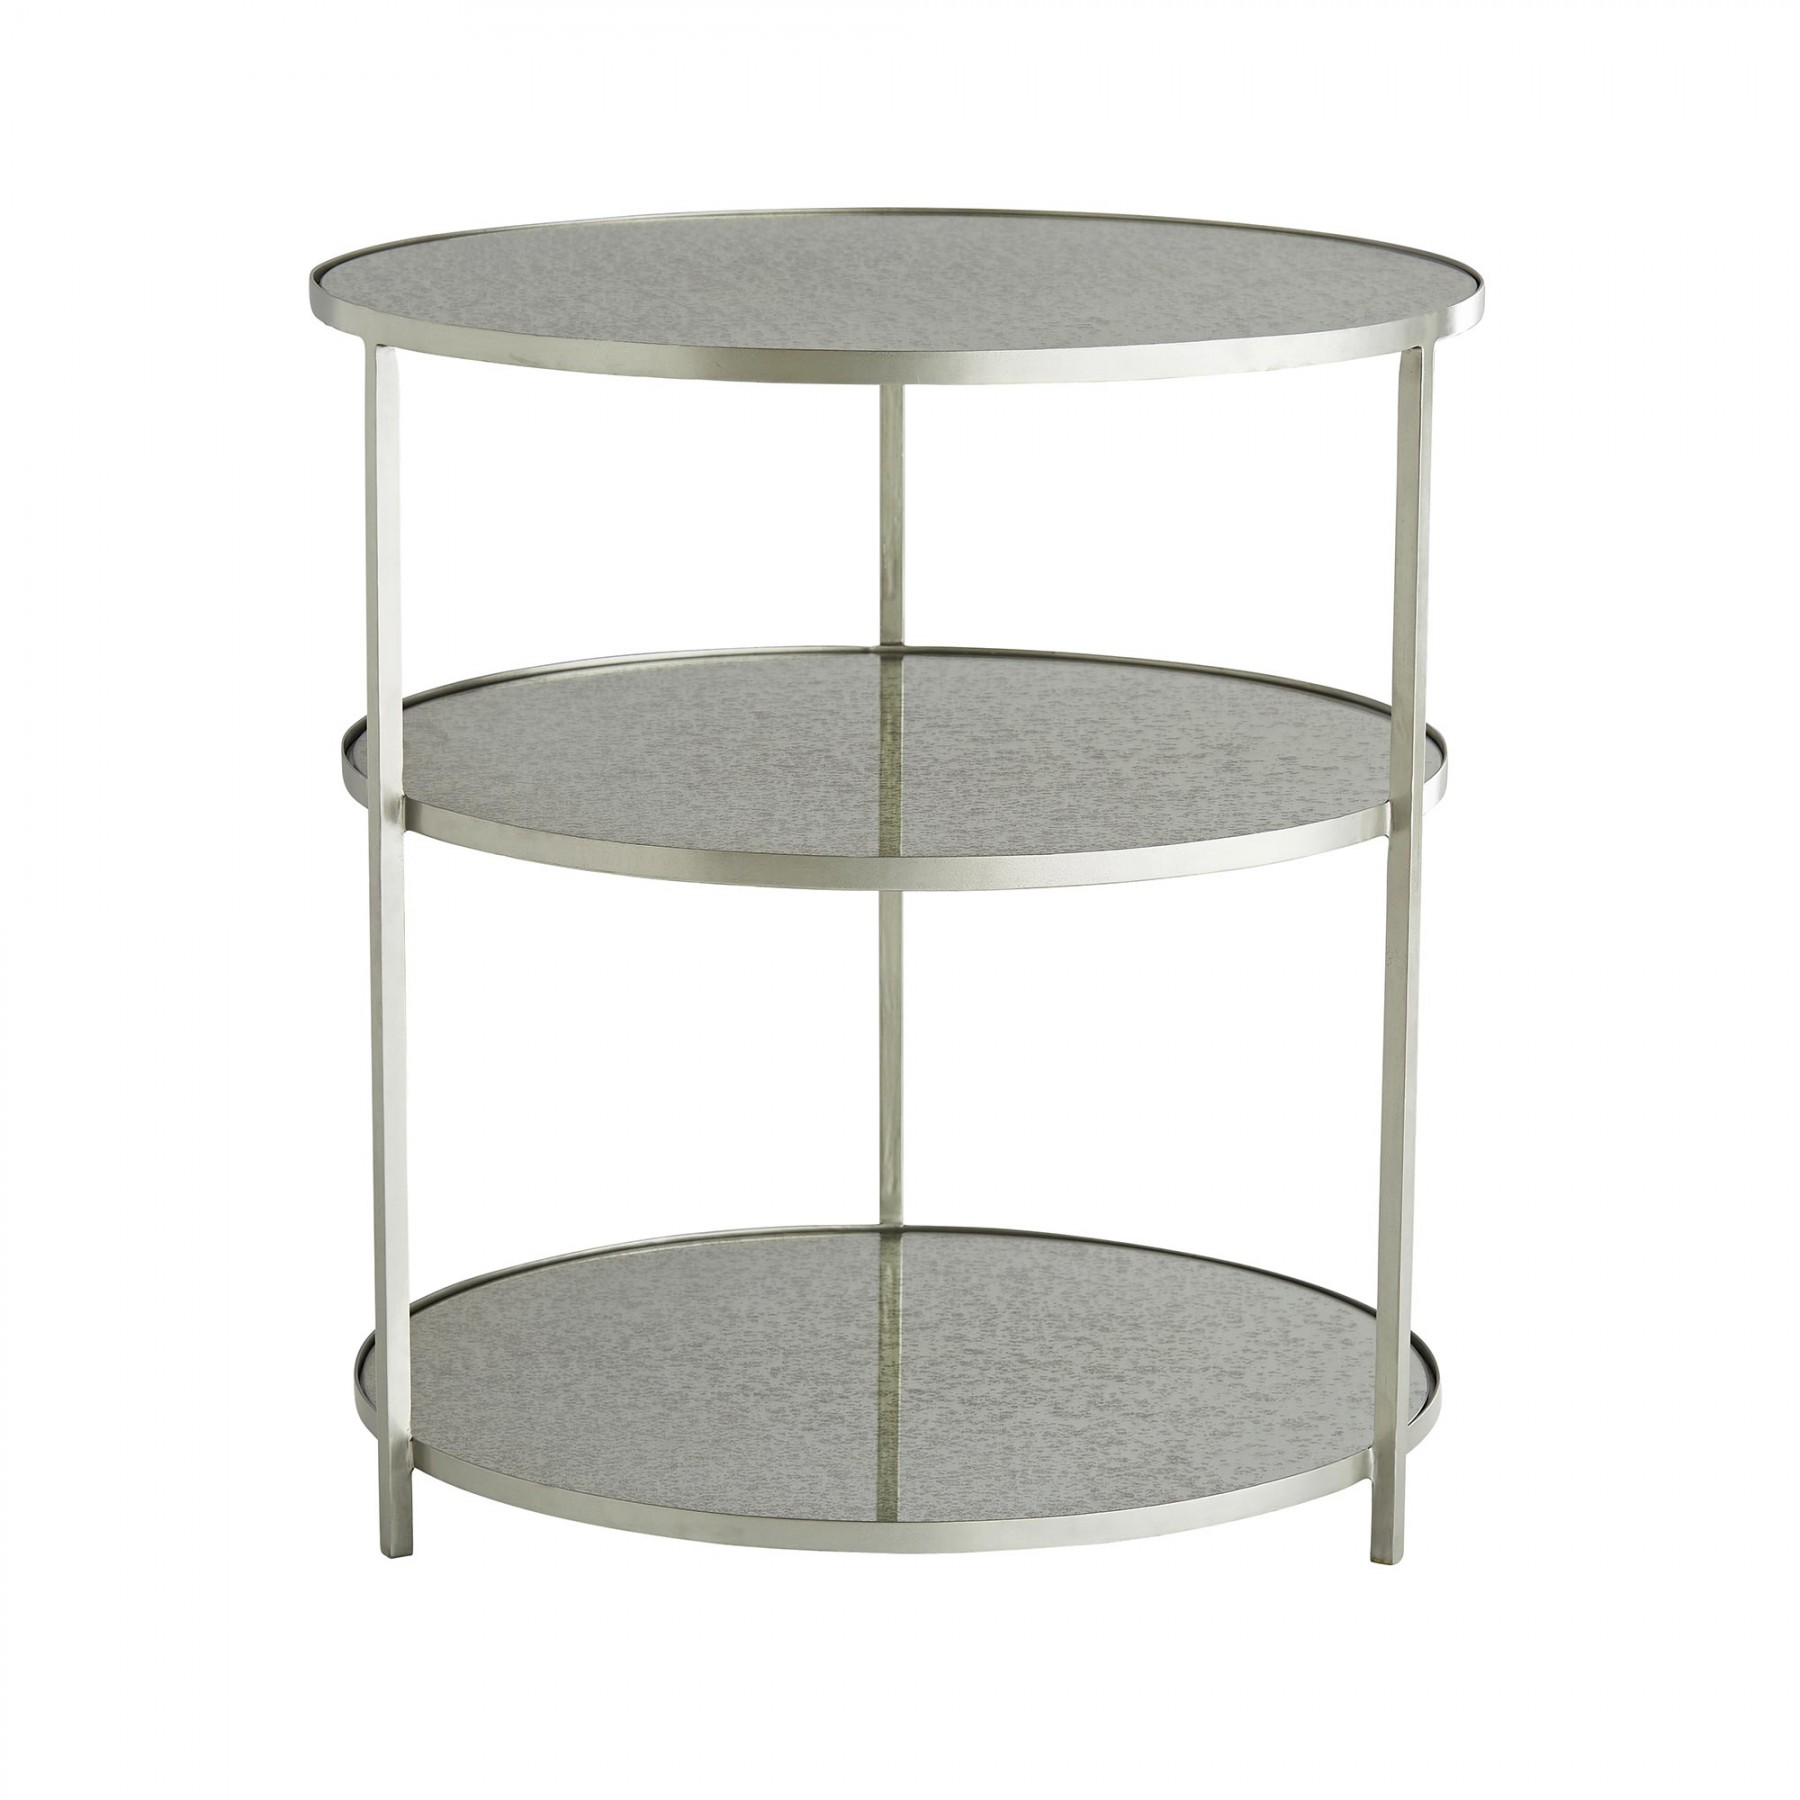 percy side table zinc accent target shoe rack astoria collection patio furniture cement coffee counter height ikea set tablecloth for round reasonably threshold storage cabinets